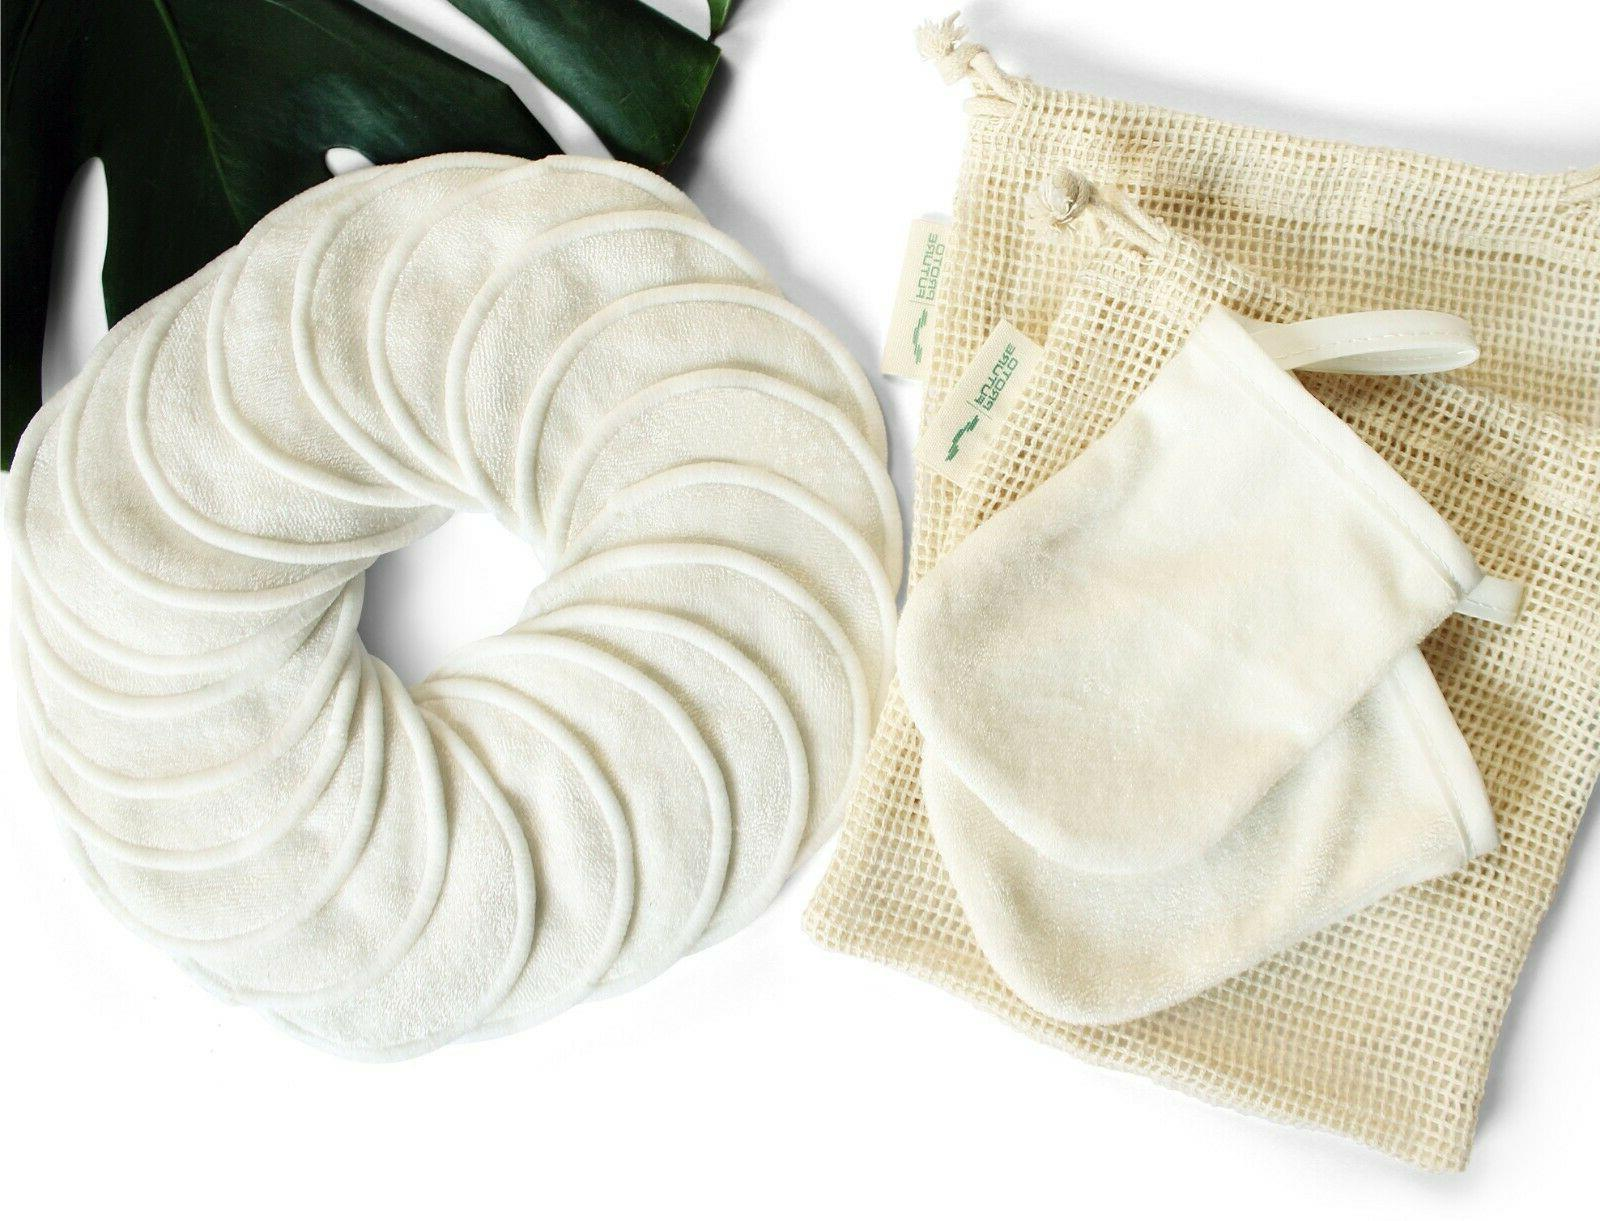 Reusable - 20 Pads, 2 Gloves & 2